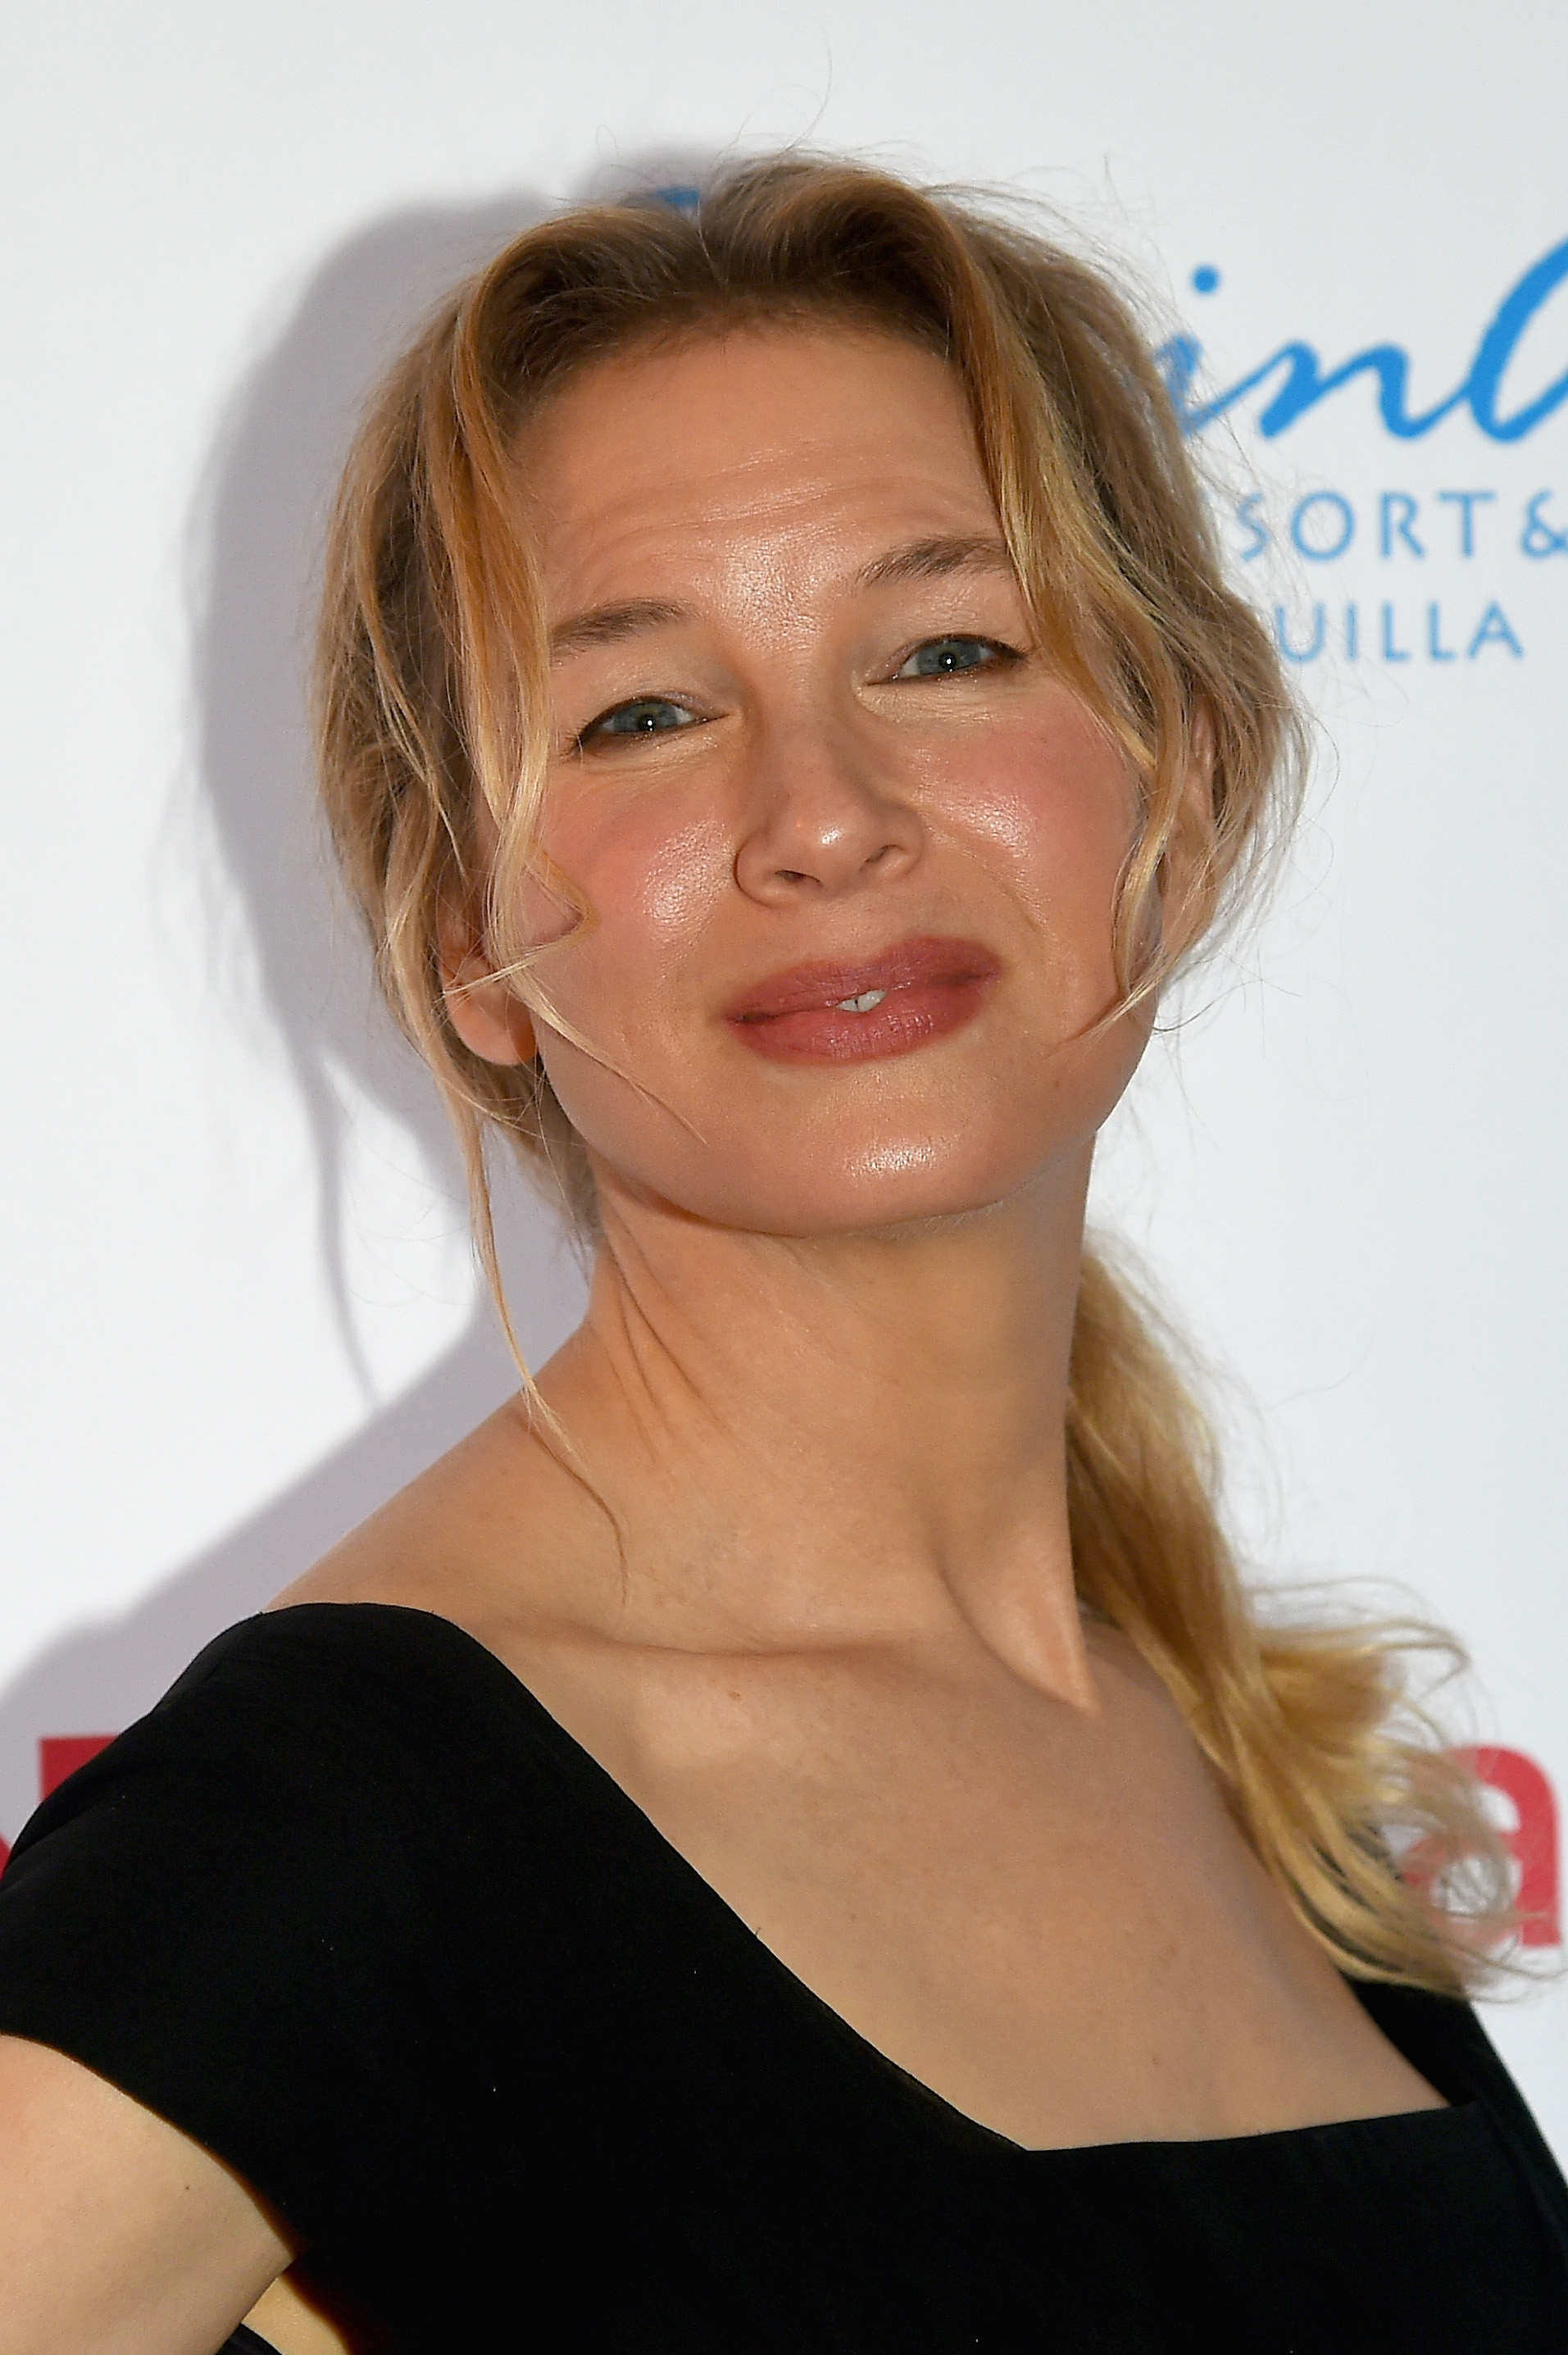 GREENWICH, CT - JUNE 01:  Renee Zellweger attends the Changemaker Honoree Gala during the Greenwich International Film Festival on June 1, 2017 in Greenwich, Connecticut.  (Photo by Ben Gabbe/Getty Images for Greenwich International Film Festival)